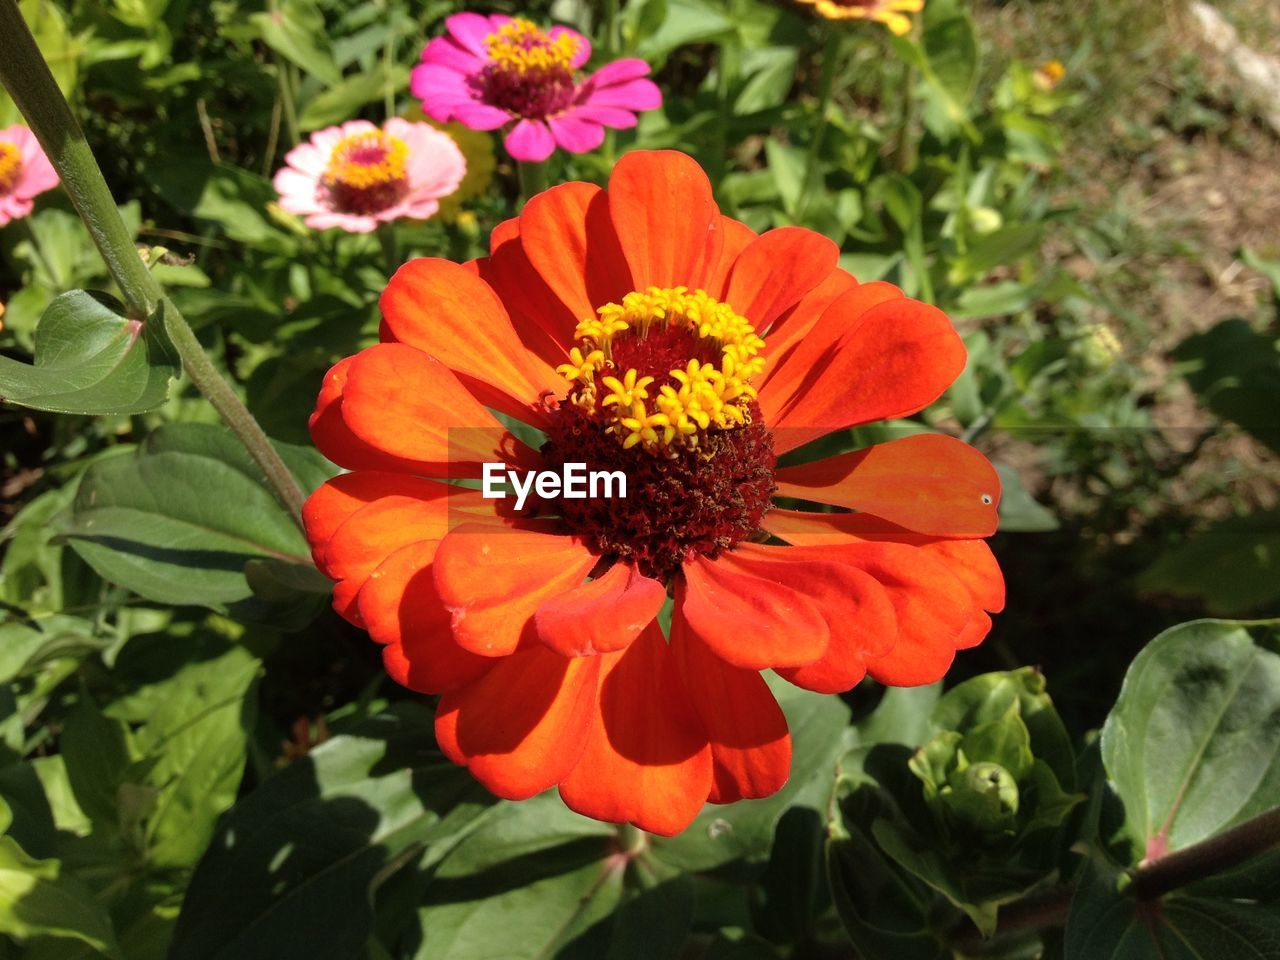 flower, growth, beauty in nature, nature, petal, plant, freshness, flower head, orange color, fragility, blooming, no people, leaf, outdoors, day, zinnia, close-up